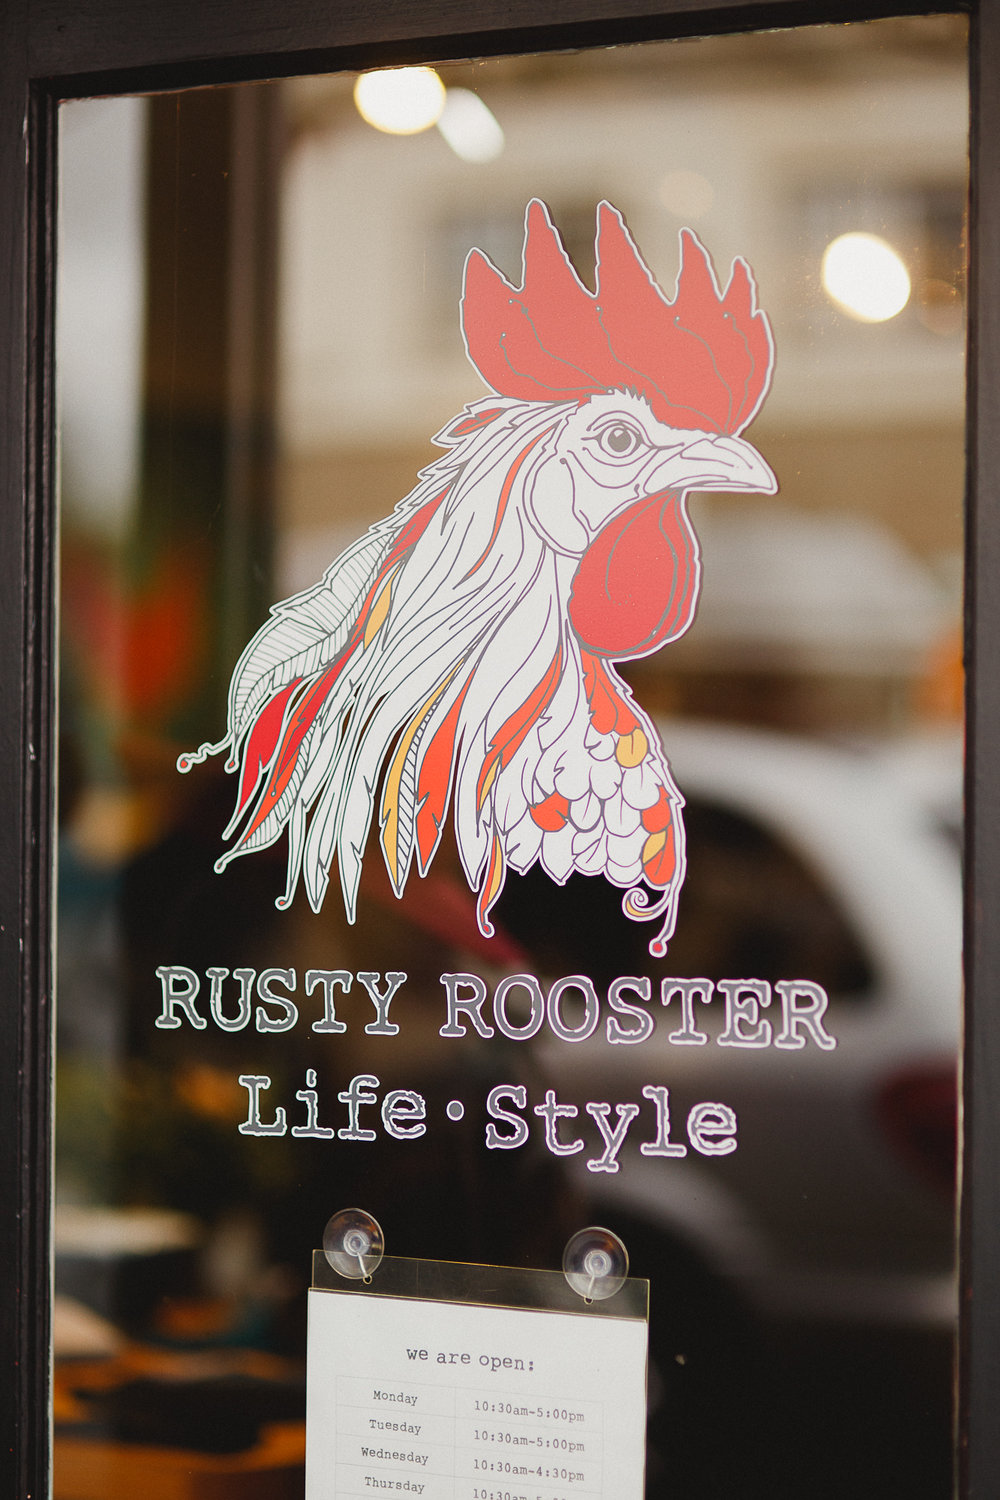 rusty rooster life.style cumberland bc - paola brodsgaard - smoking lily - hunter boots - weareyqq - comox valley - vancouver island small shop - paola brodsgaard - IMG_9854.jpg